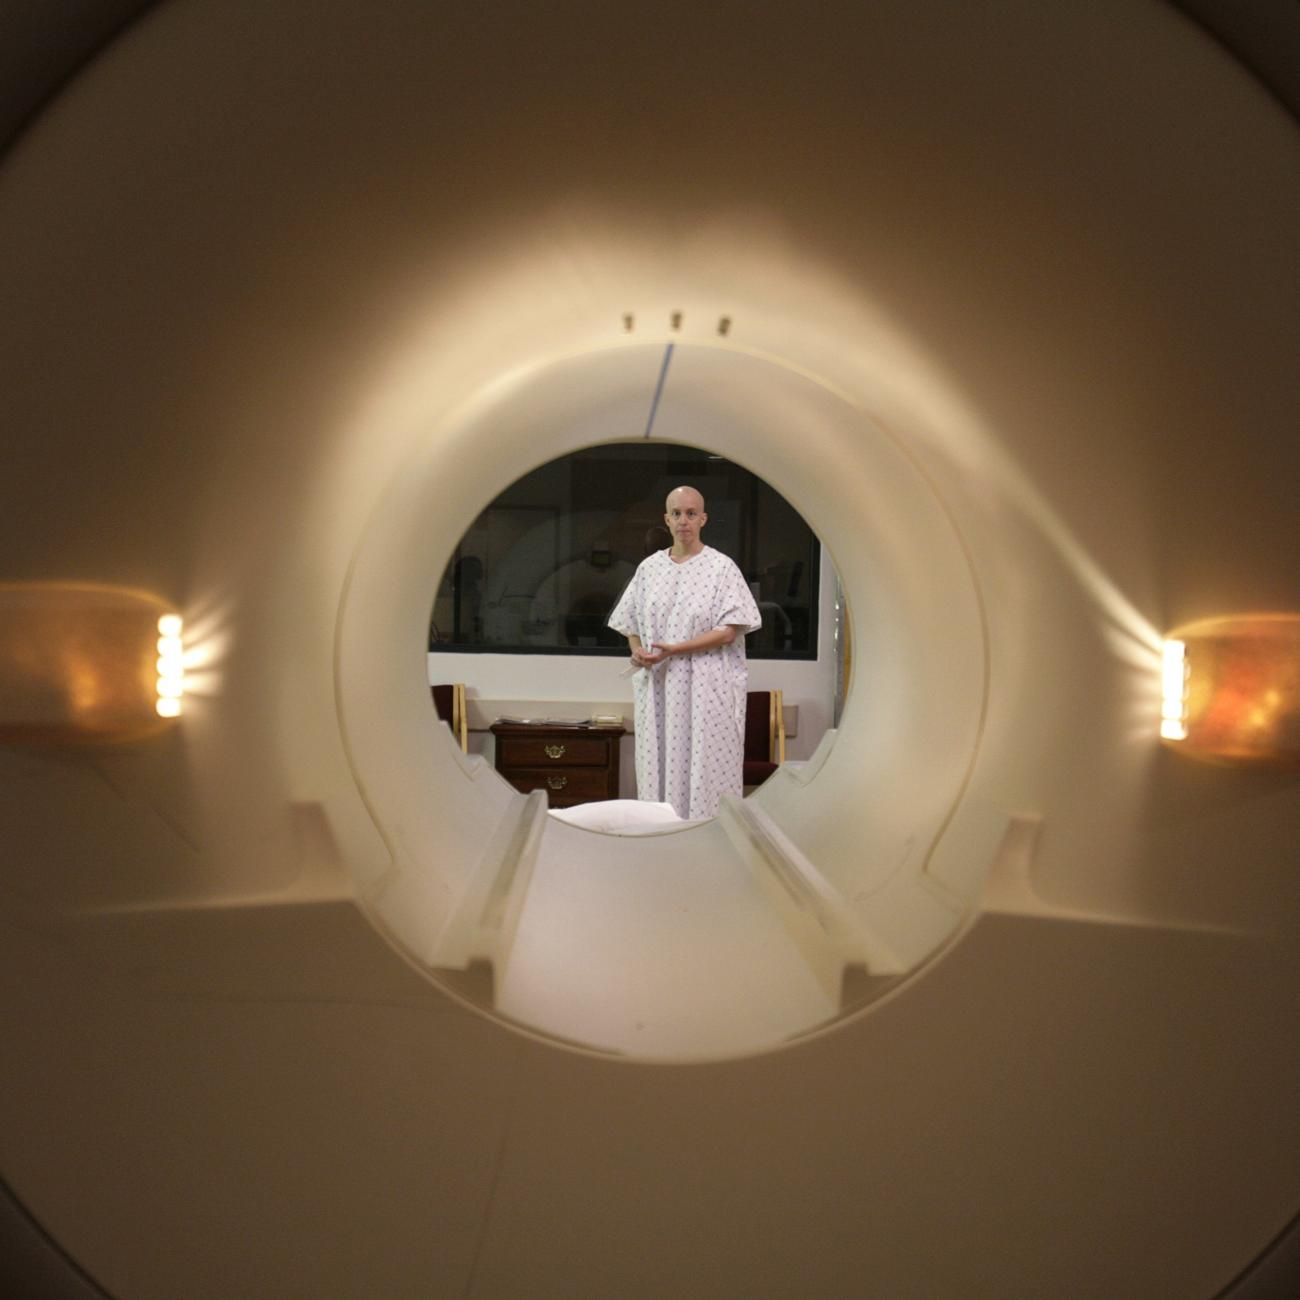 Cancer patient Deborah Charles is seen through the tube of a magnetic resonance imaging scanner as she prepares to enter the MRI machine for an examination at Georgetown University Hospital in Washington May 23, 2007.